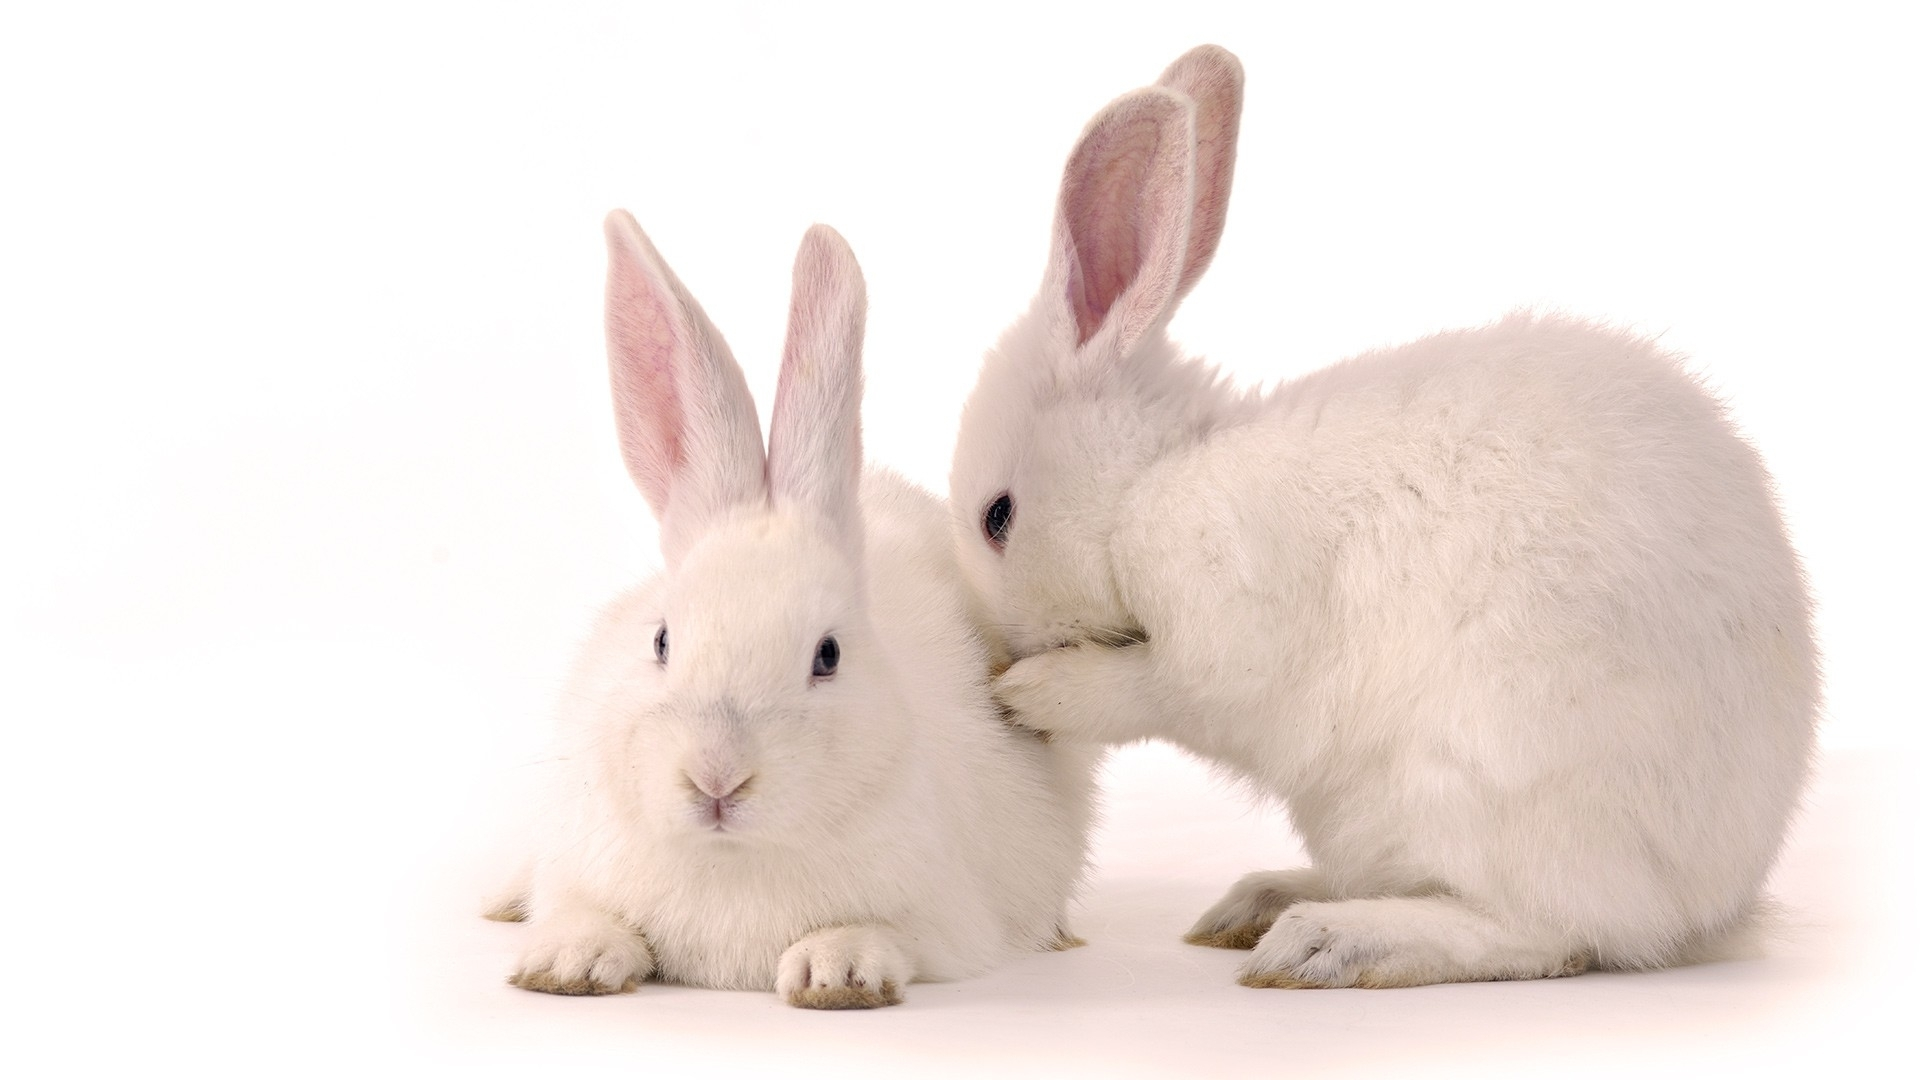 34862 download wallpaper Animals, Rabbits screensavers and pictures for free